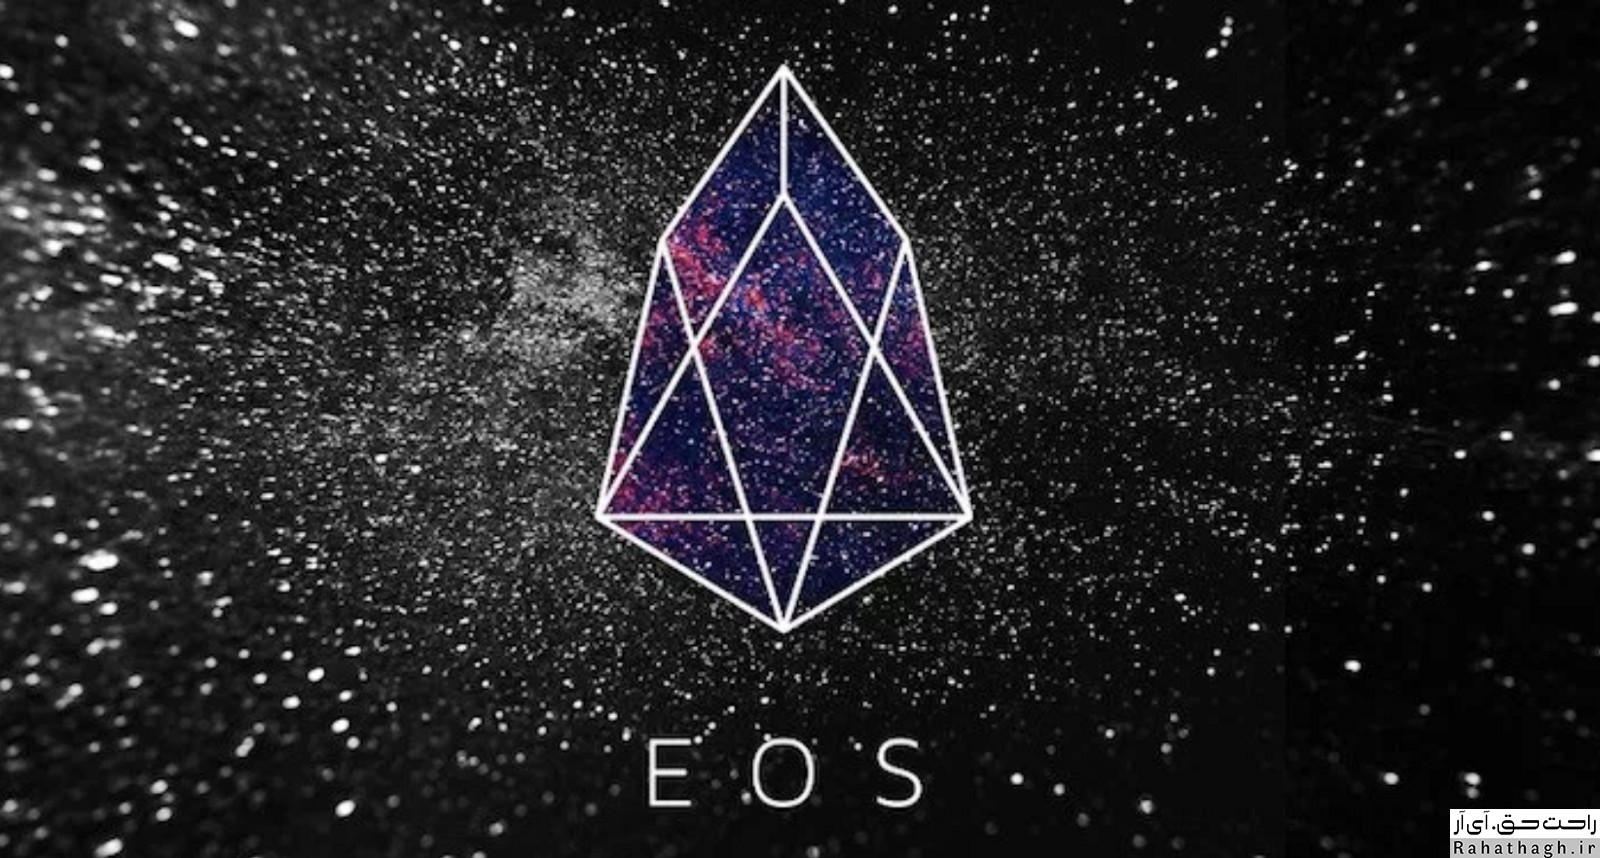 https://s19.picofile.com/file/8432927476/EOS_cRYPTOCURRENCY_%D8%B1%D8%A7%D8%AD%D8%AA_%D8%AD%D9%82.jpg